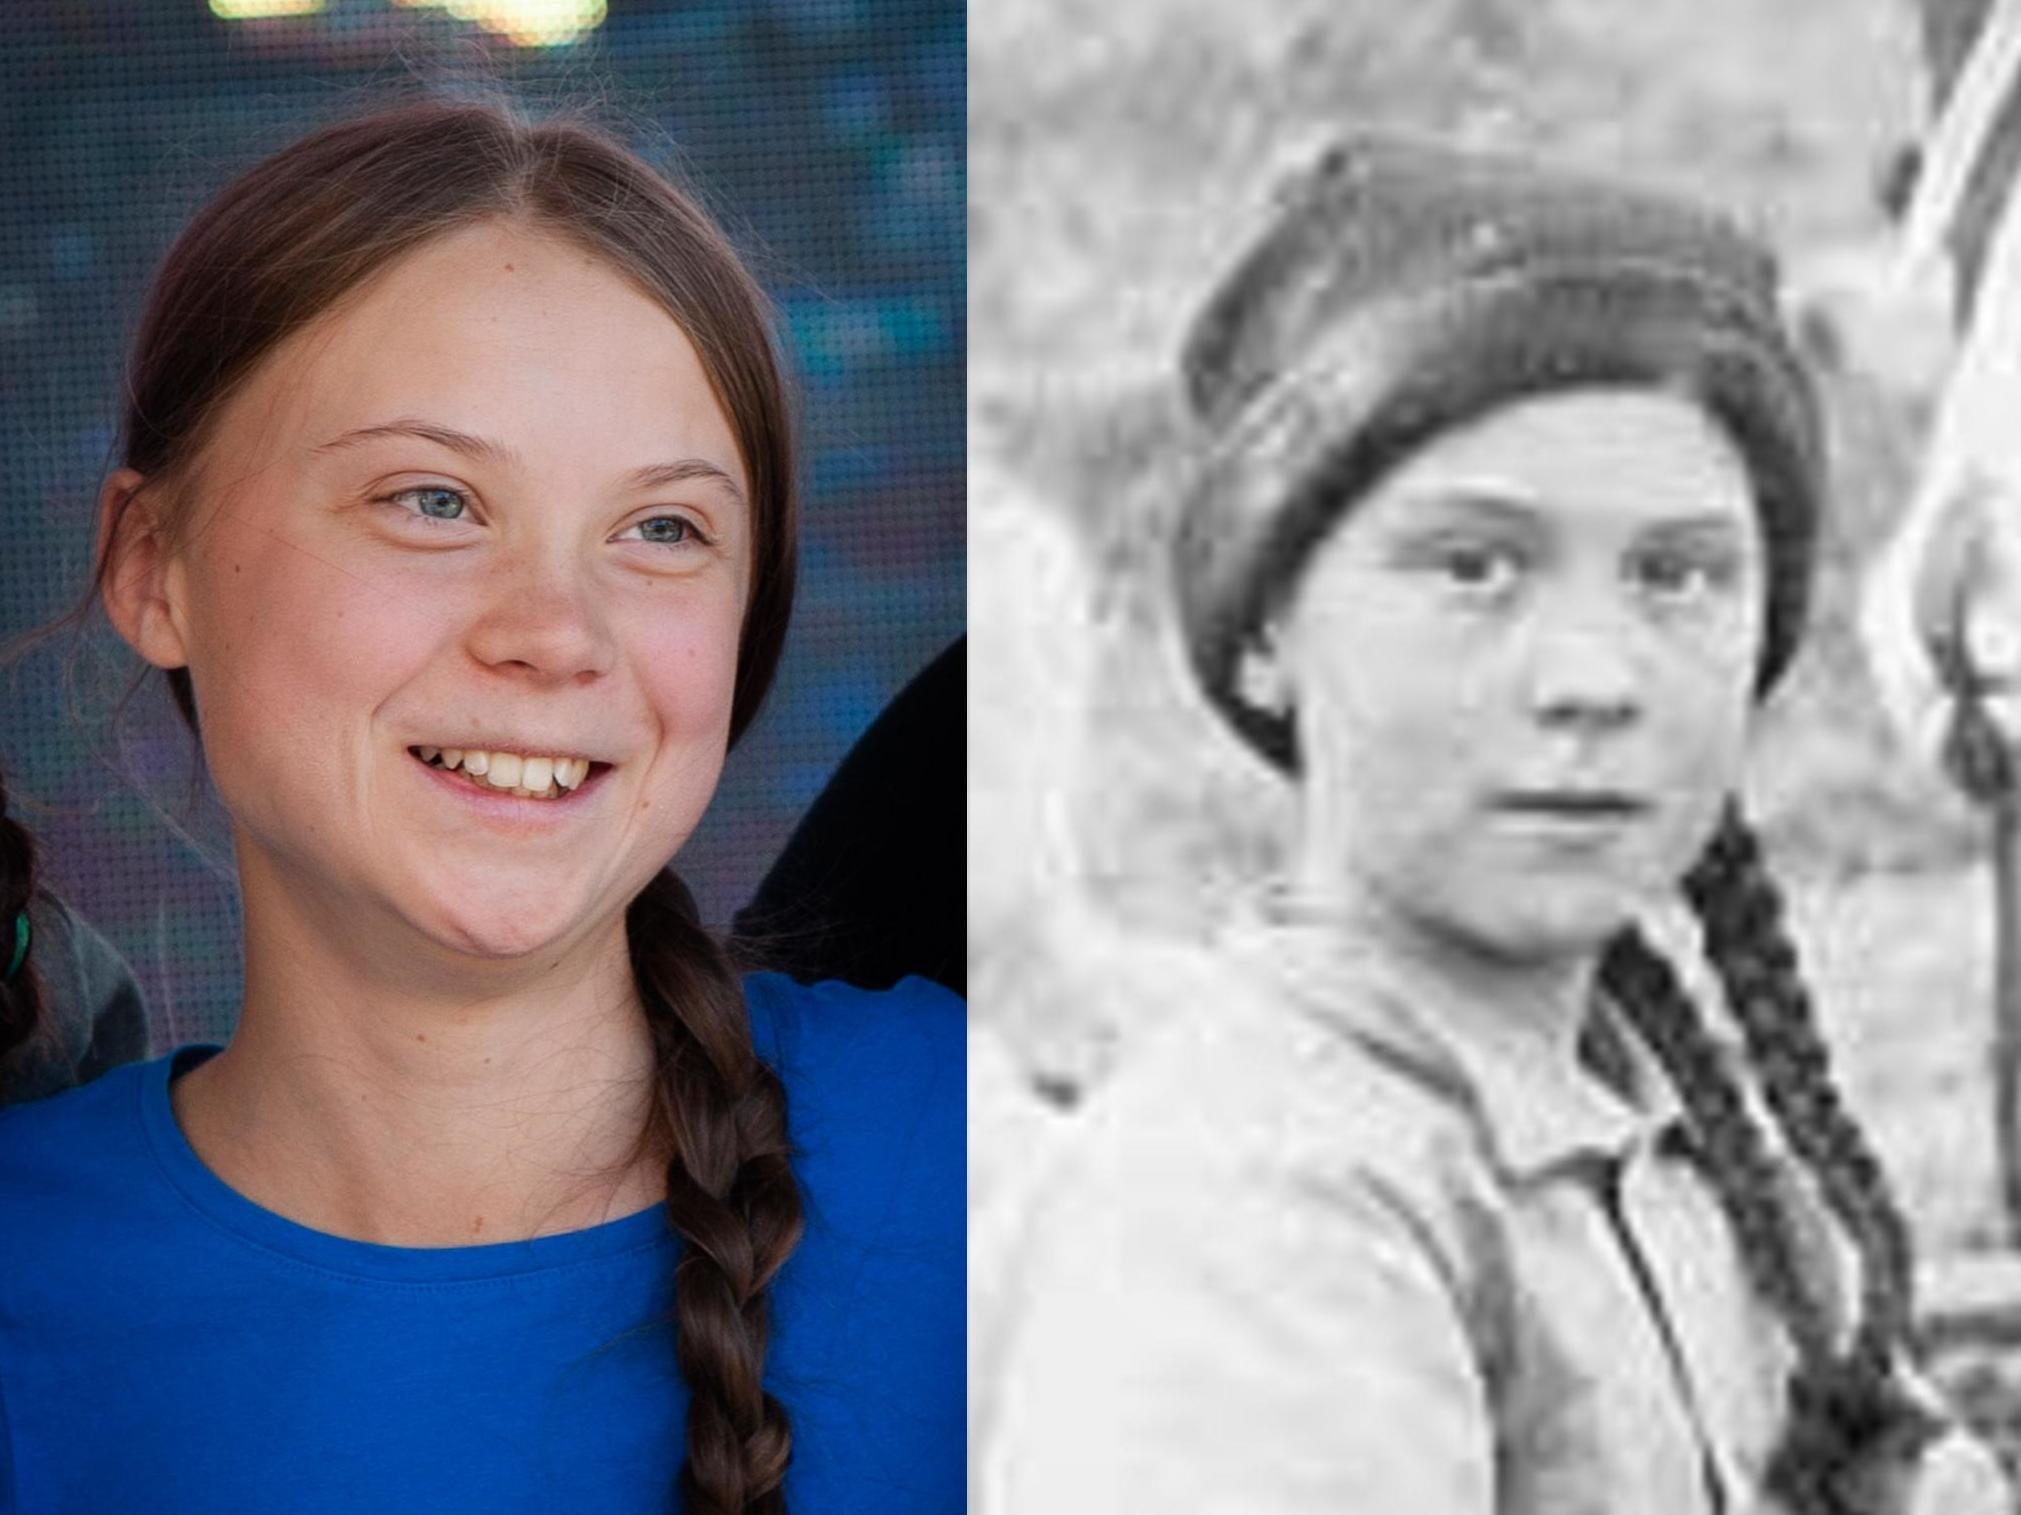 Greta Thunberg lookalike photo from 1898 prompts confusion: 'She's a time traveller sent to save us'